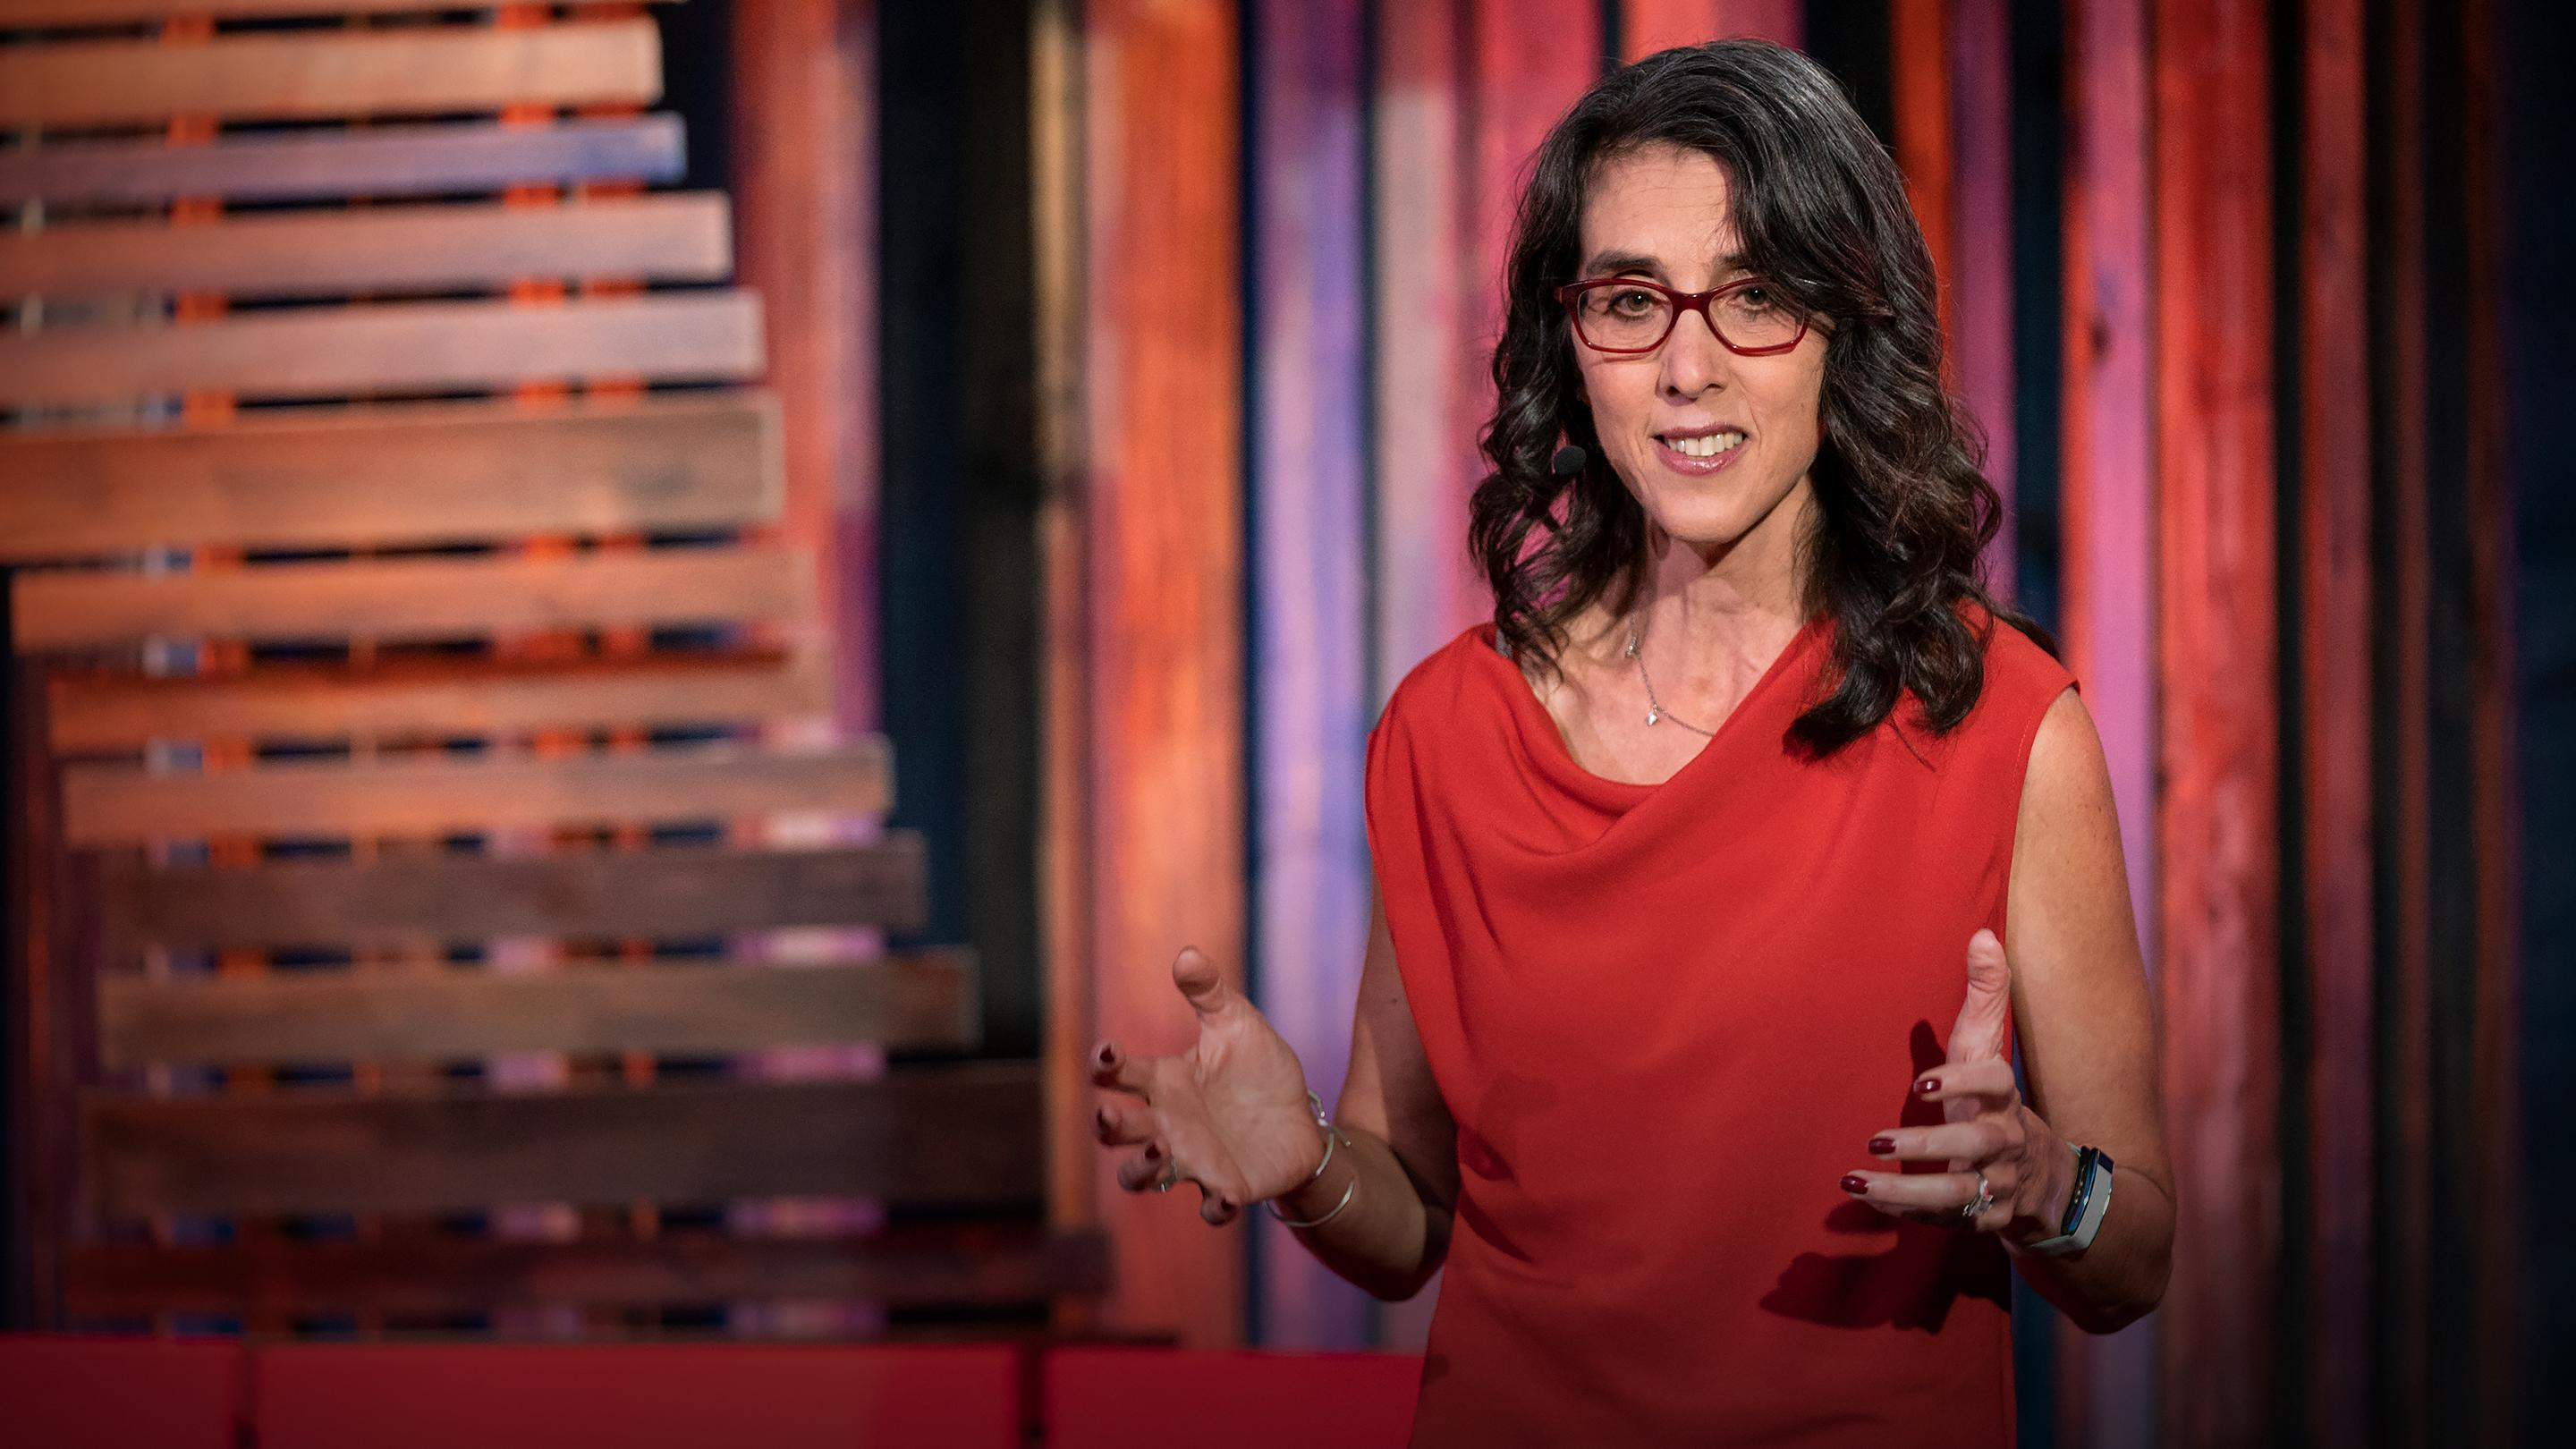 3 tips for leaders to get the future of work right | Debbie Lovich